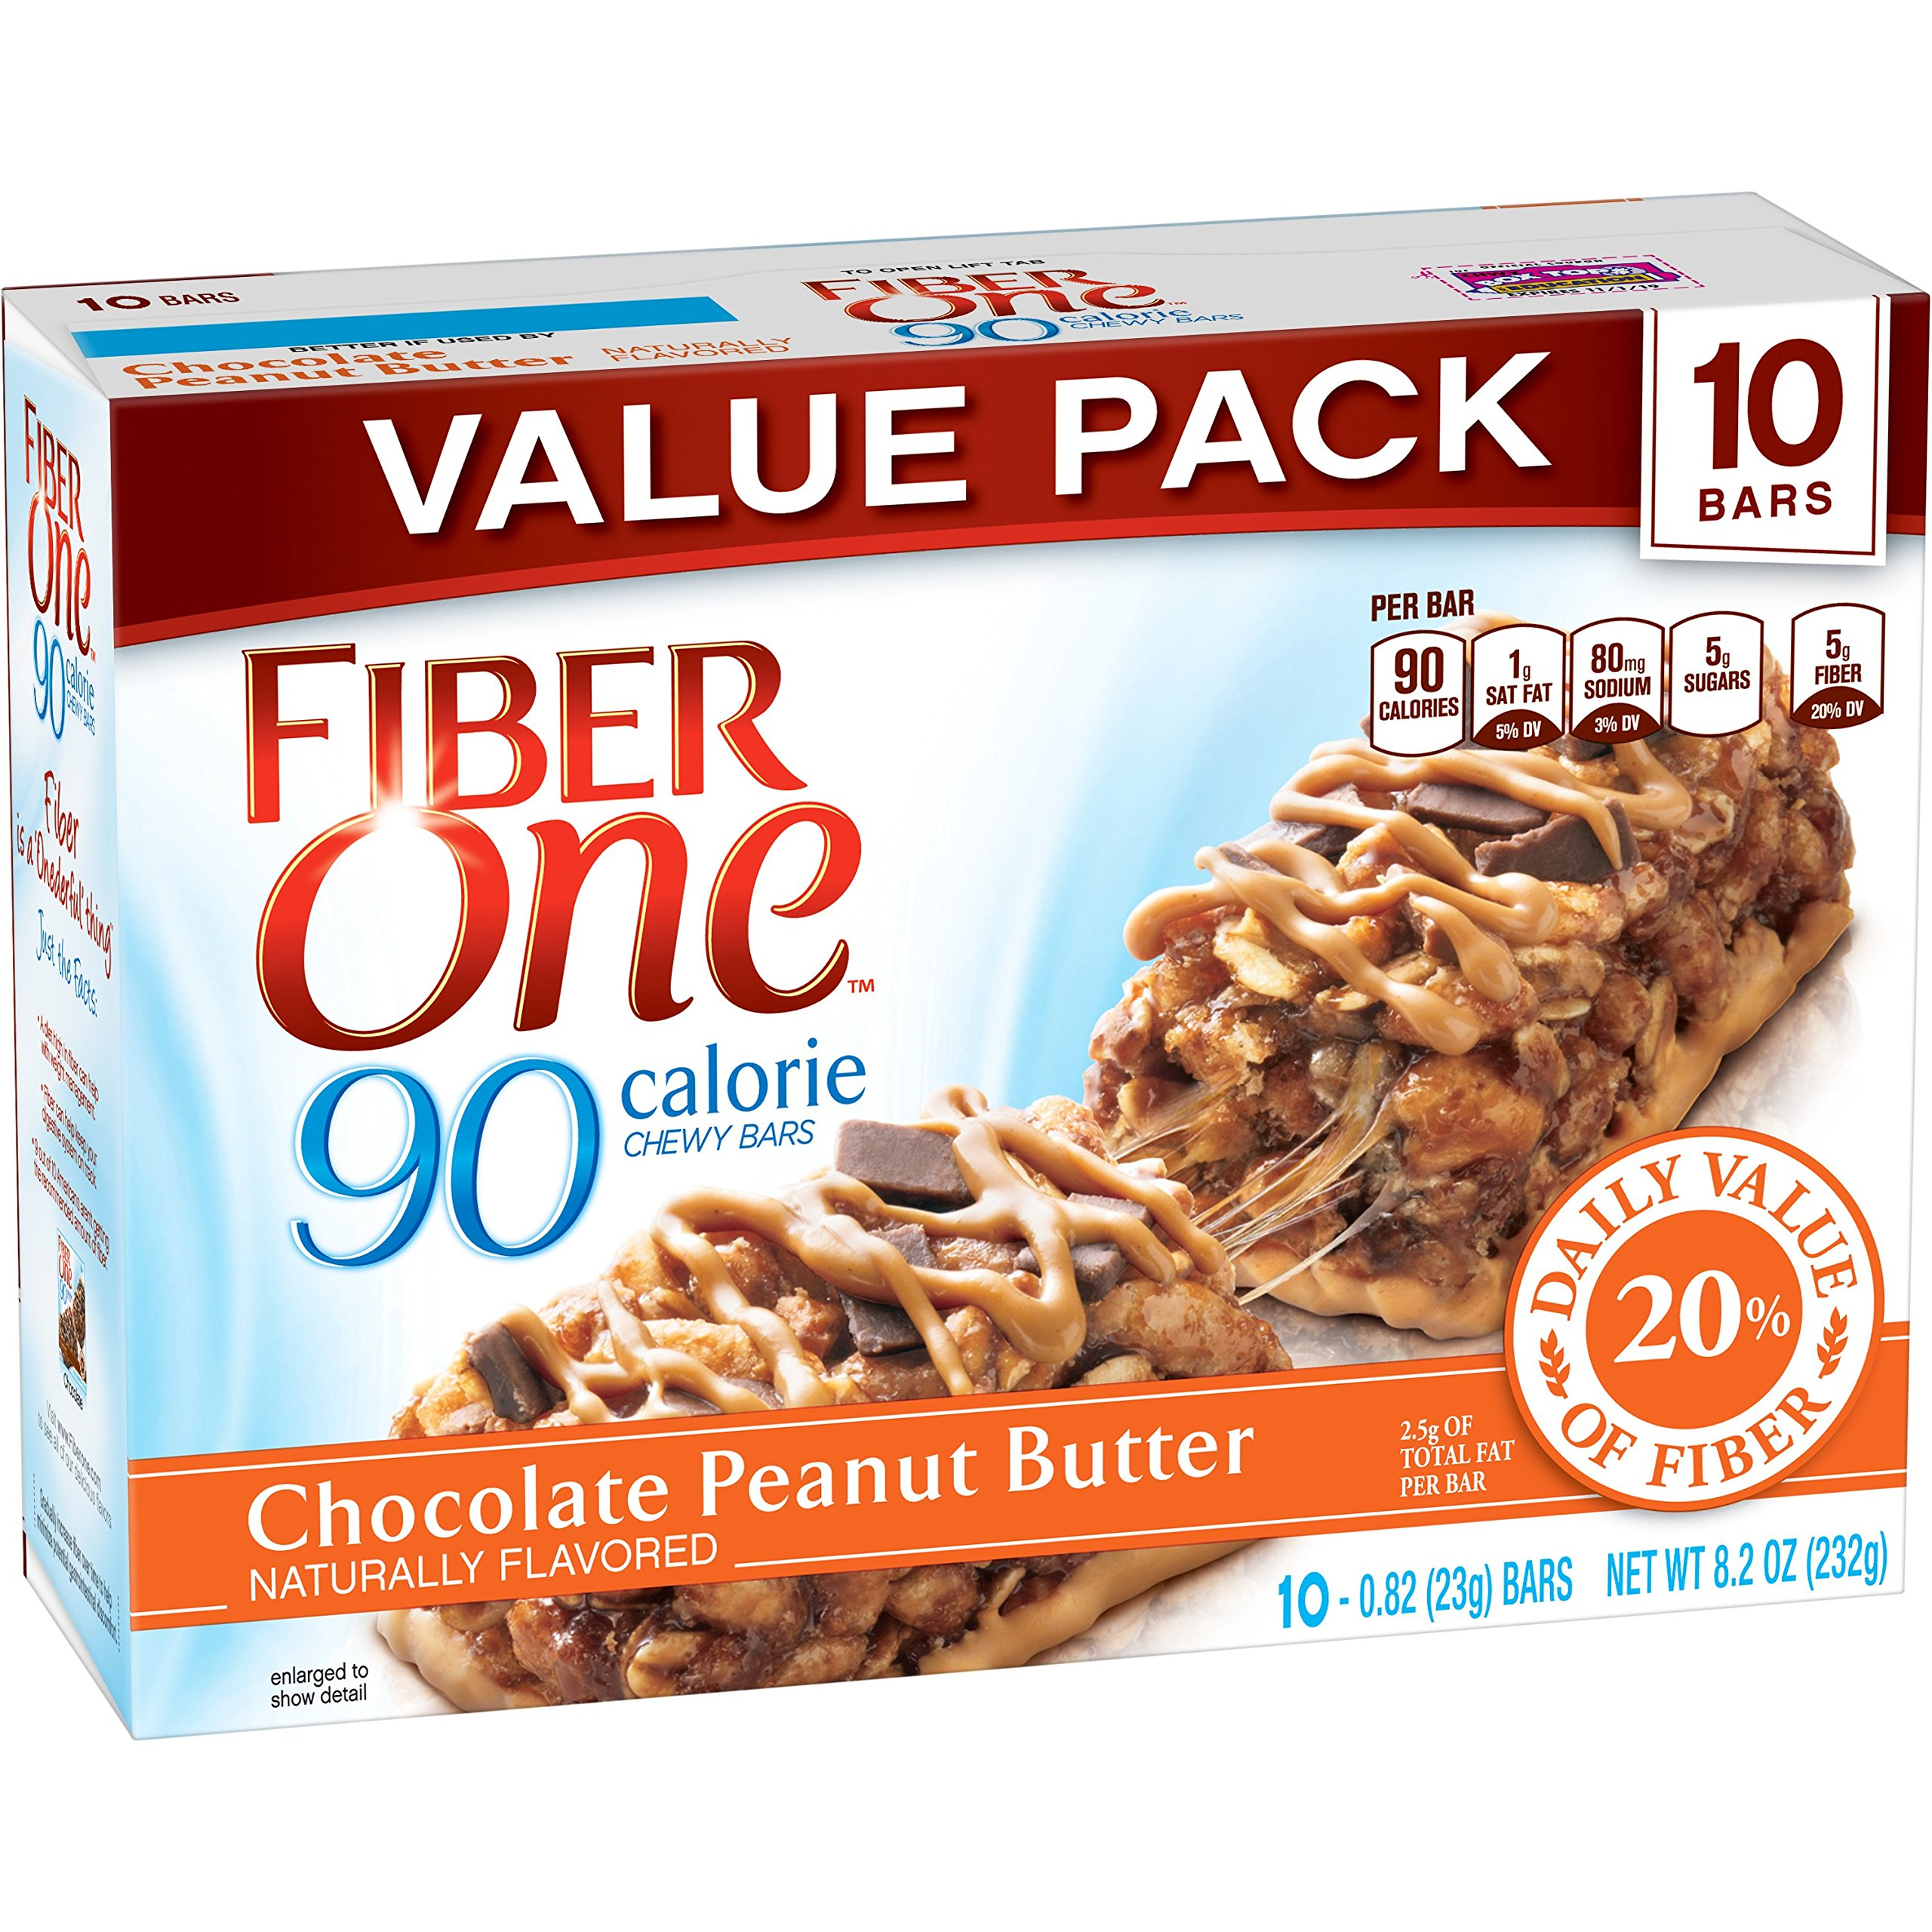 Fiber One Chewy Bars Chocolate Peanut Butter